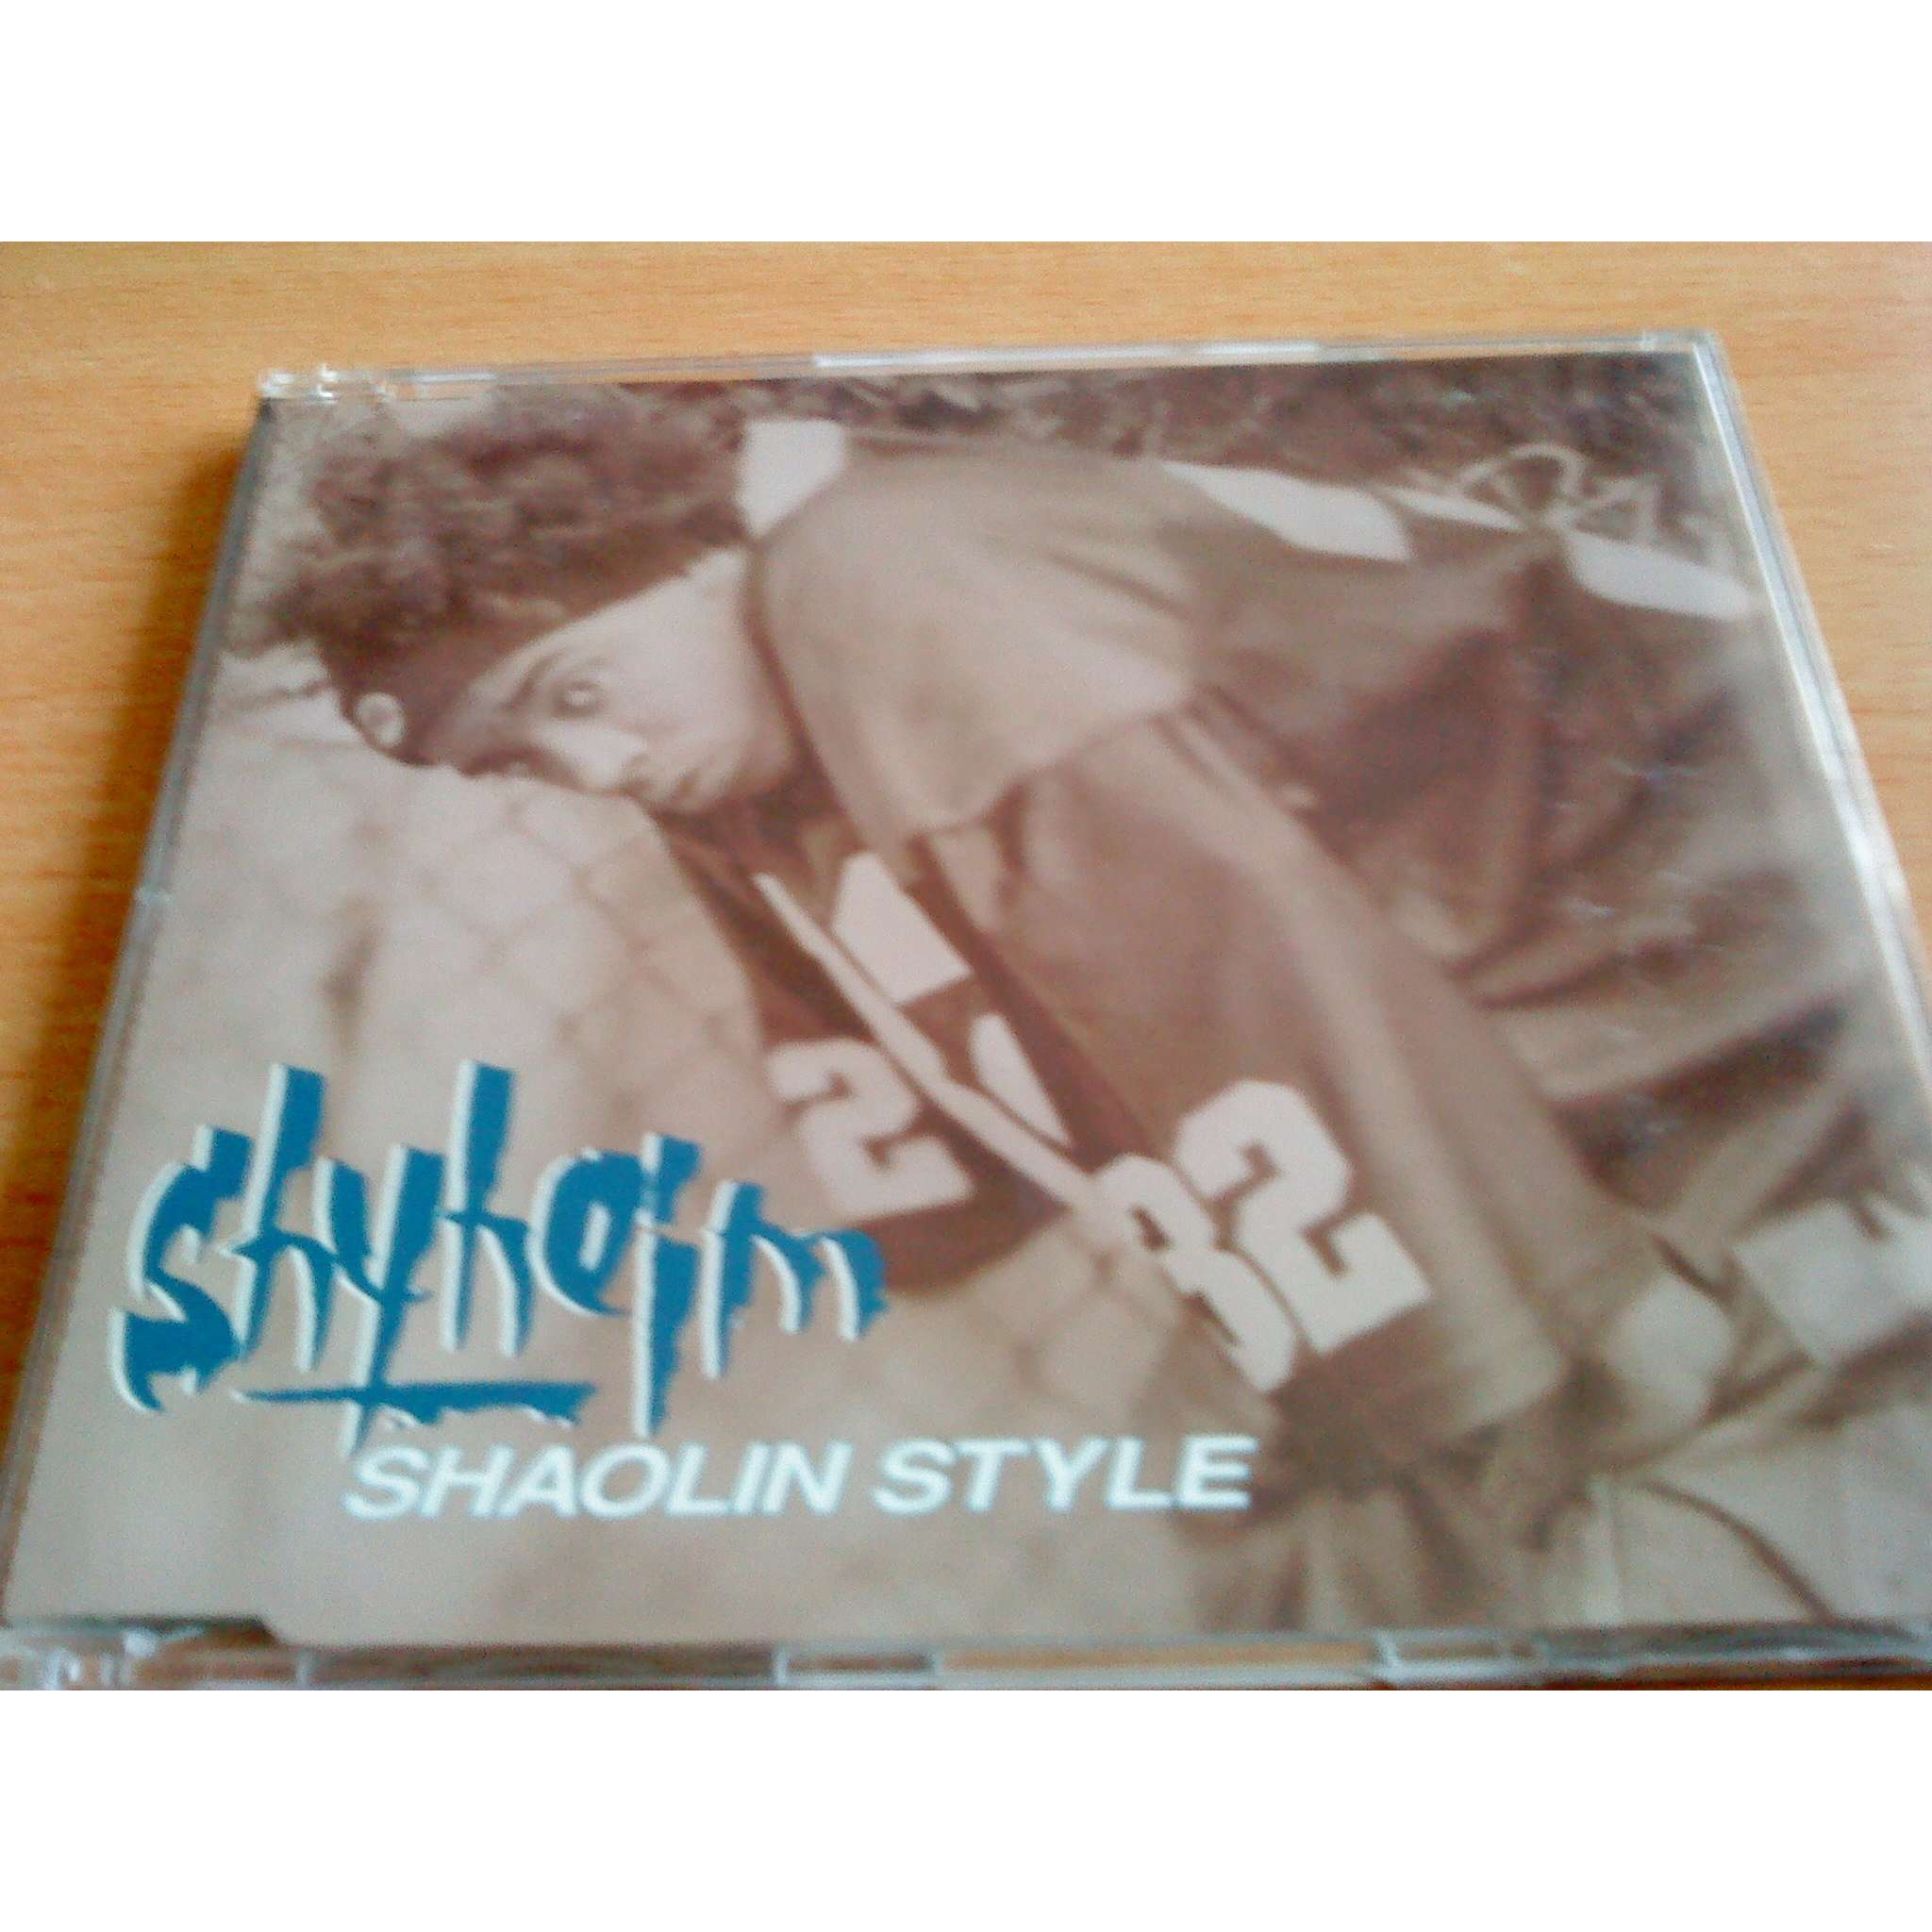 shyheim shaolin style mcd for sale on groovecollectorcom